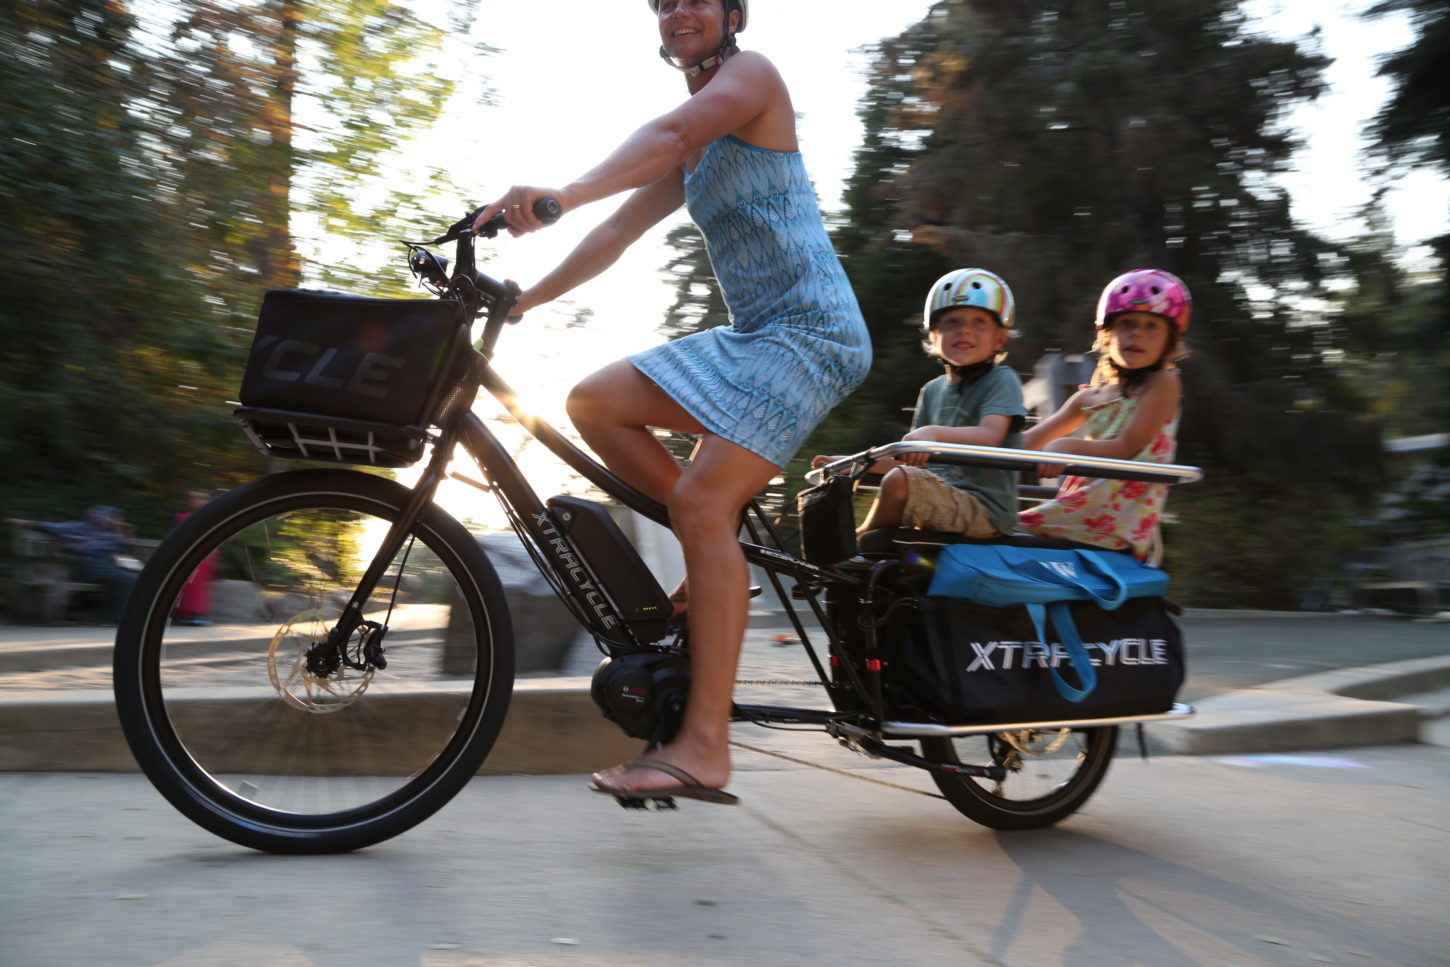 woman riding bike with children in the back cargo compartment